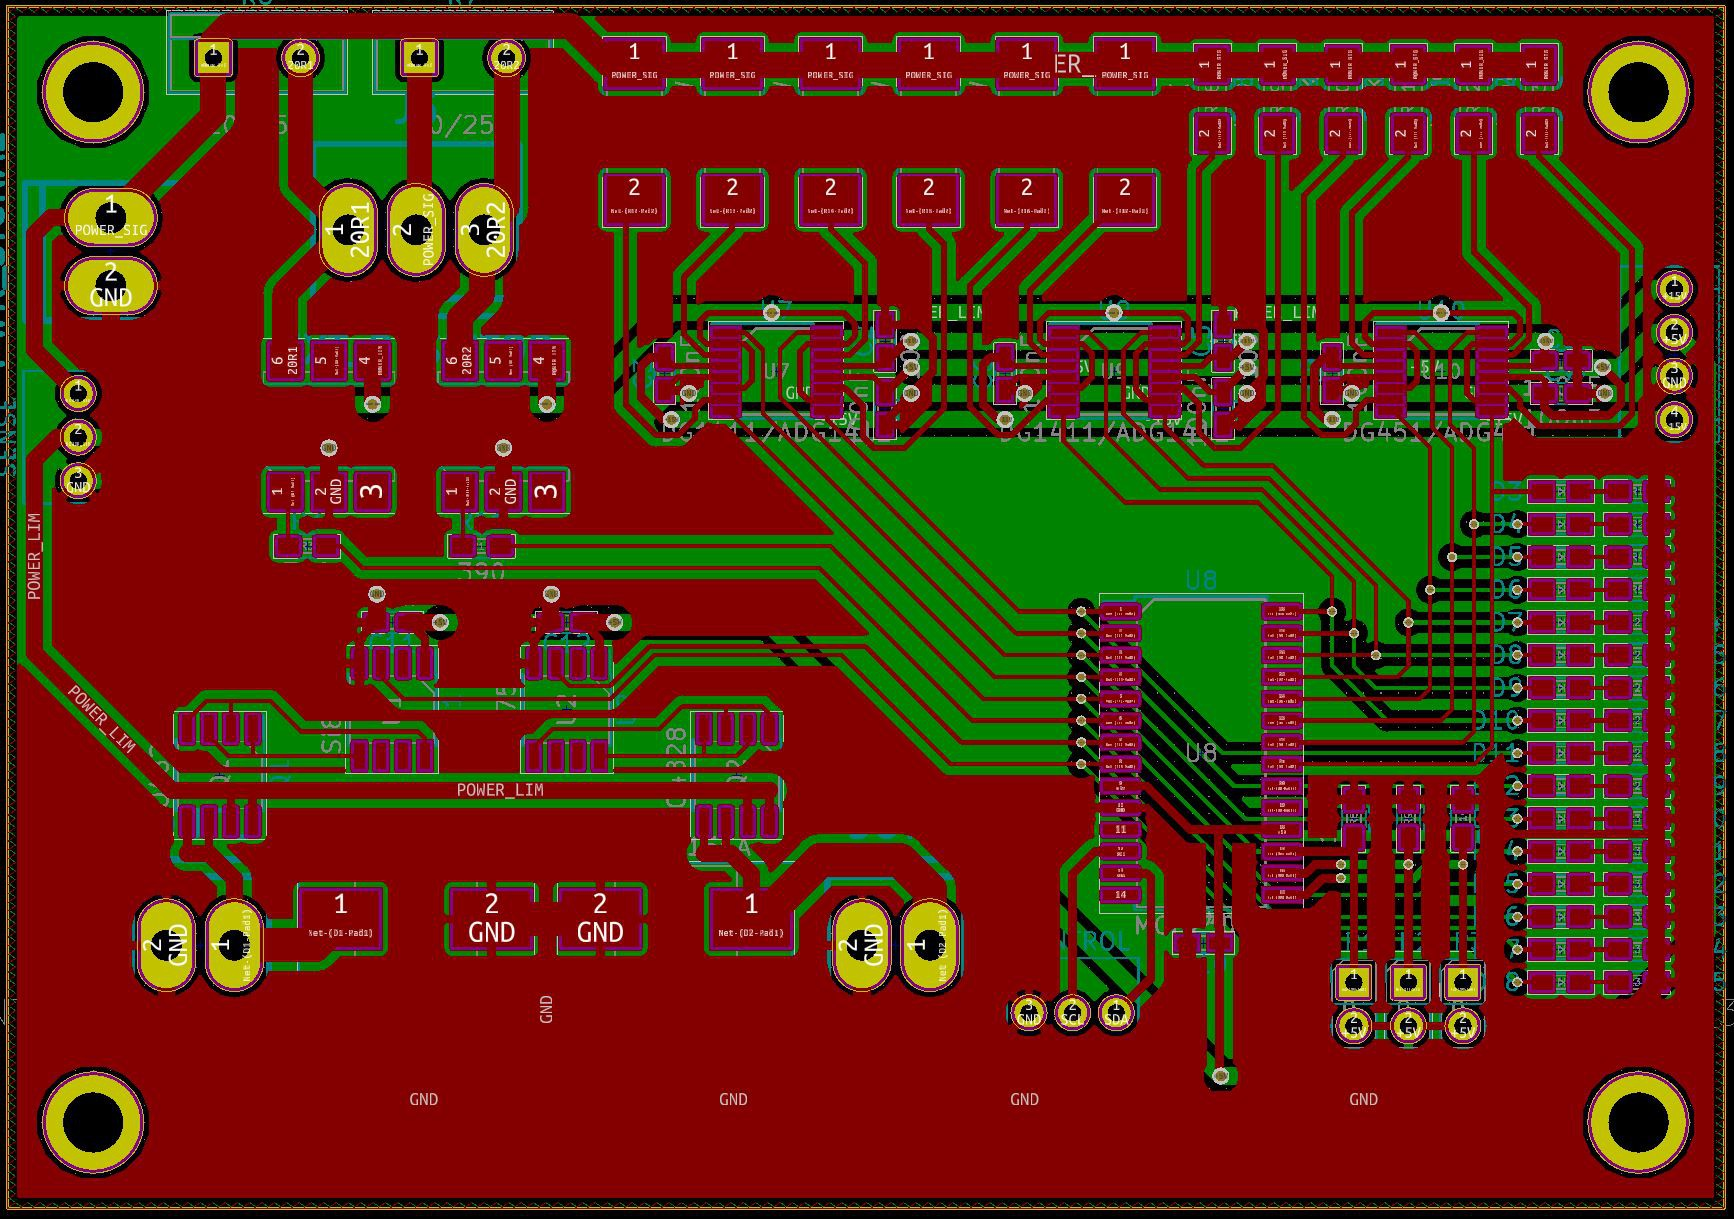 Microcontroller Based Curve Tracer Instrument Cluster Circuit Board Is Bad 1000 Bucks Page 4 Ive Finished The Pcb Design All Of Three Analog Boards Together With Psu Here Are Pictures Designs